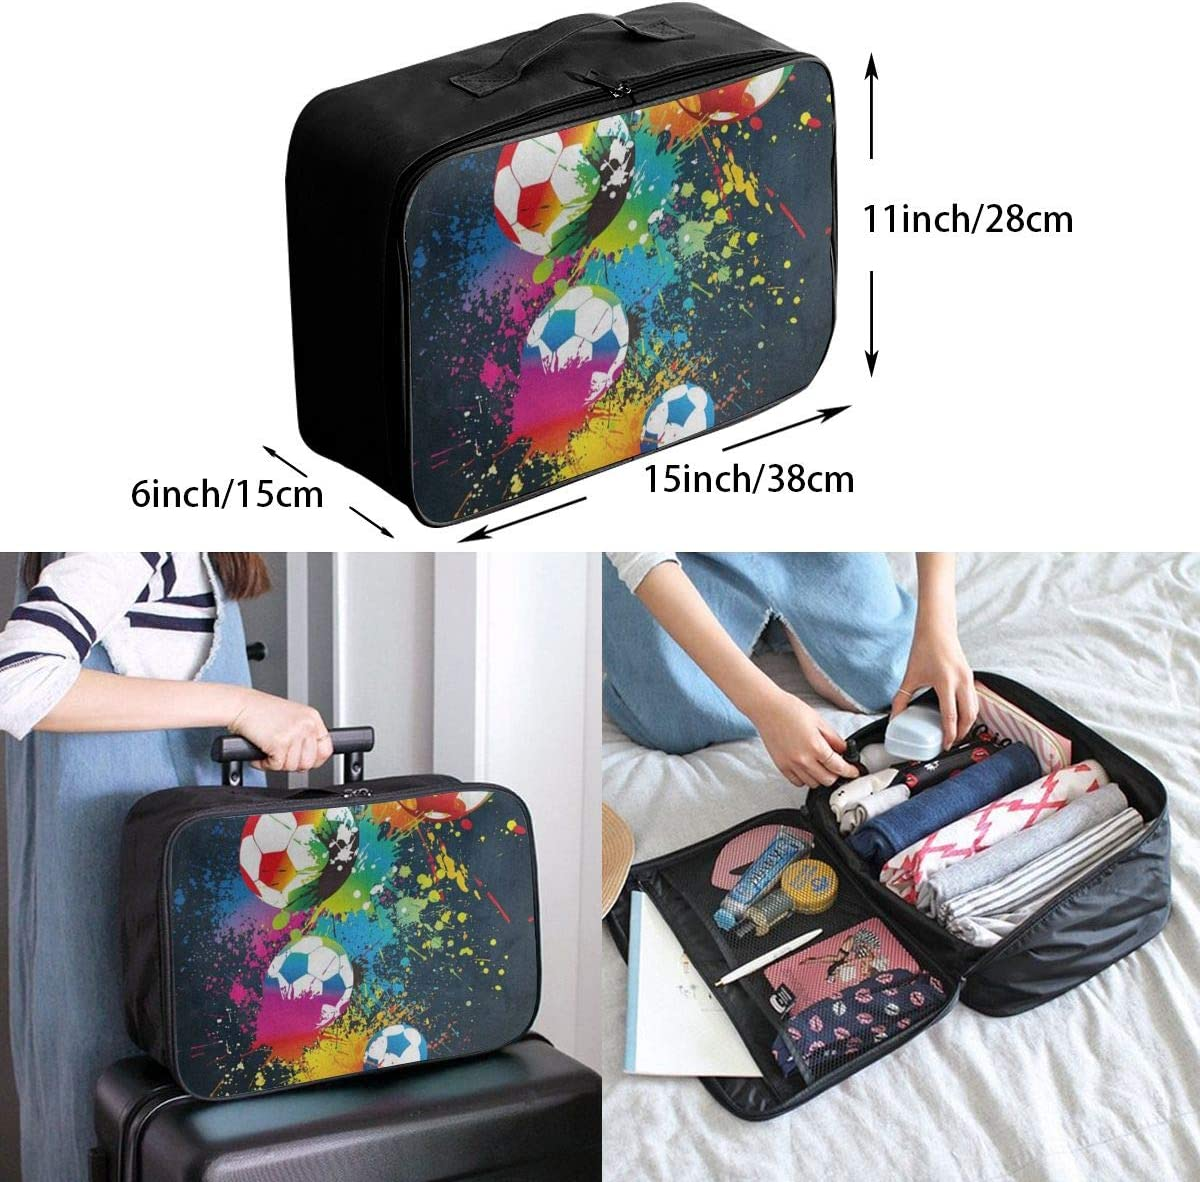 Travel Bags Colorful Football Soccer Colored Portable Suitcase Inspiring Trolley Handle Luggage Bag